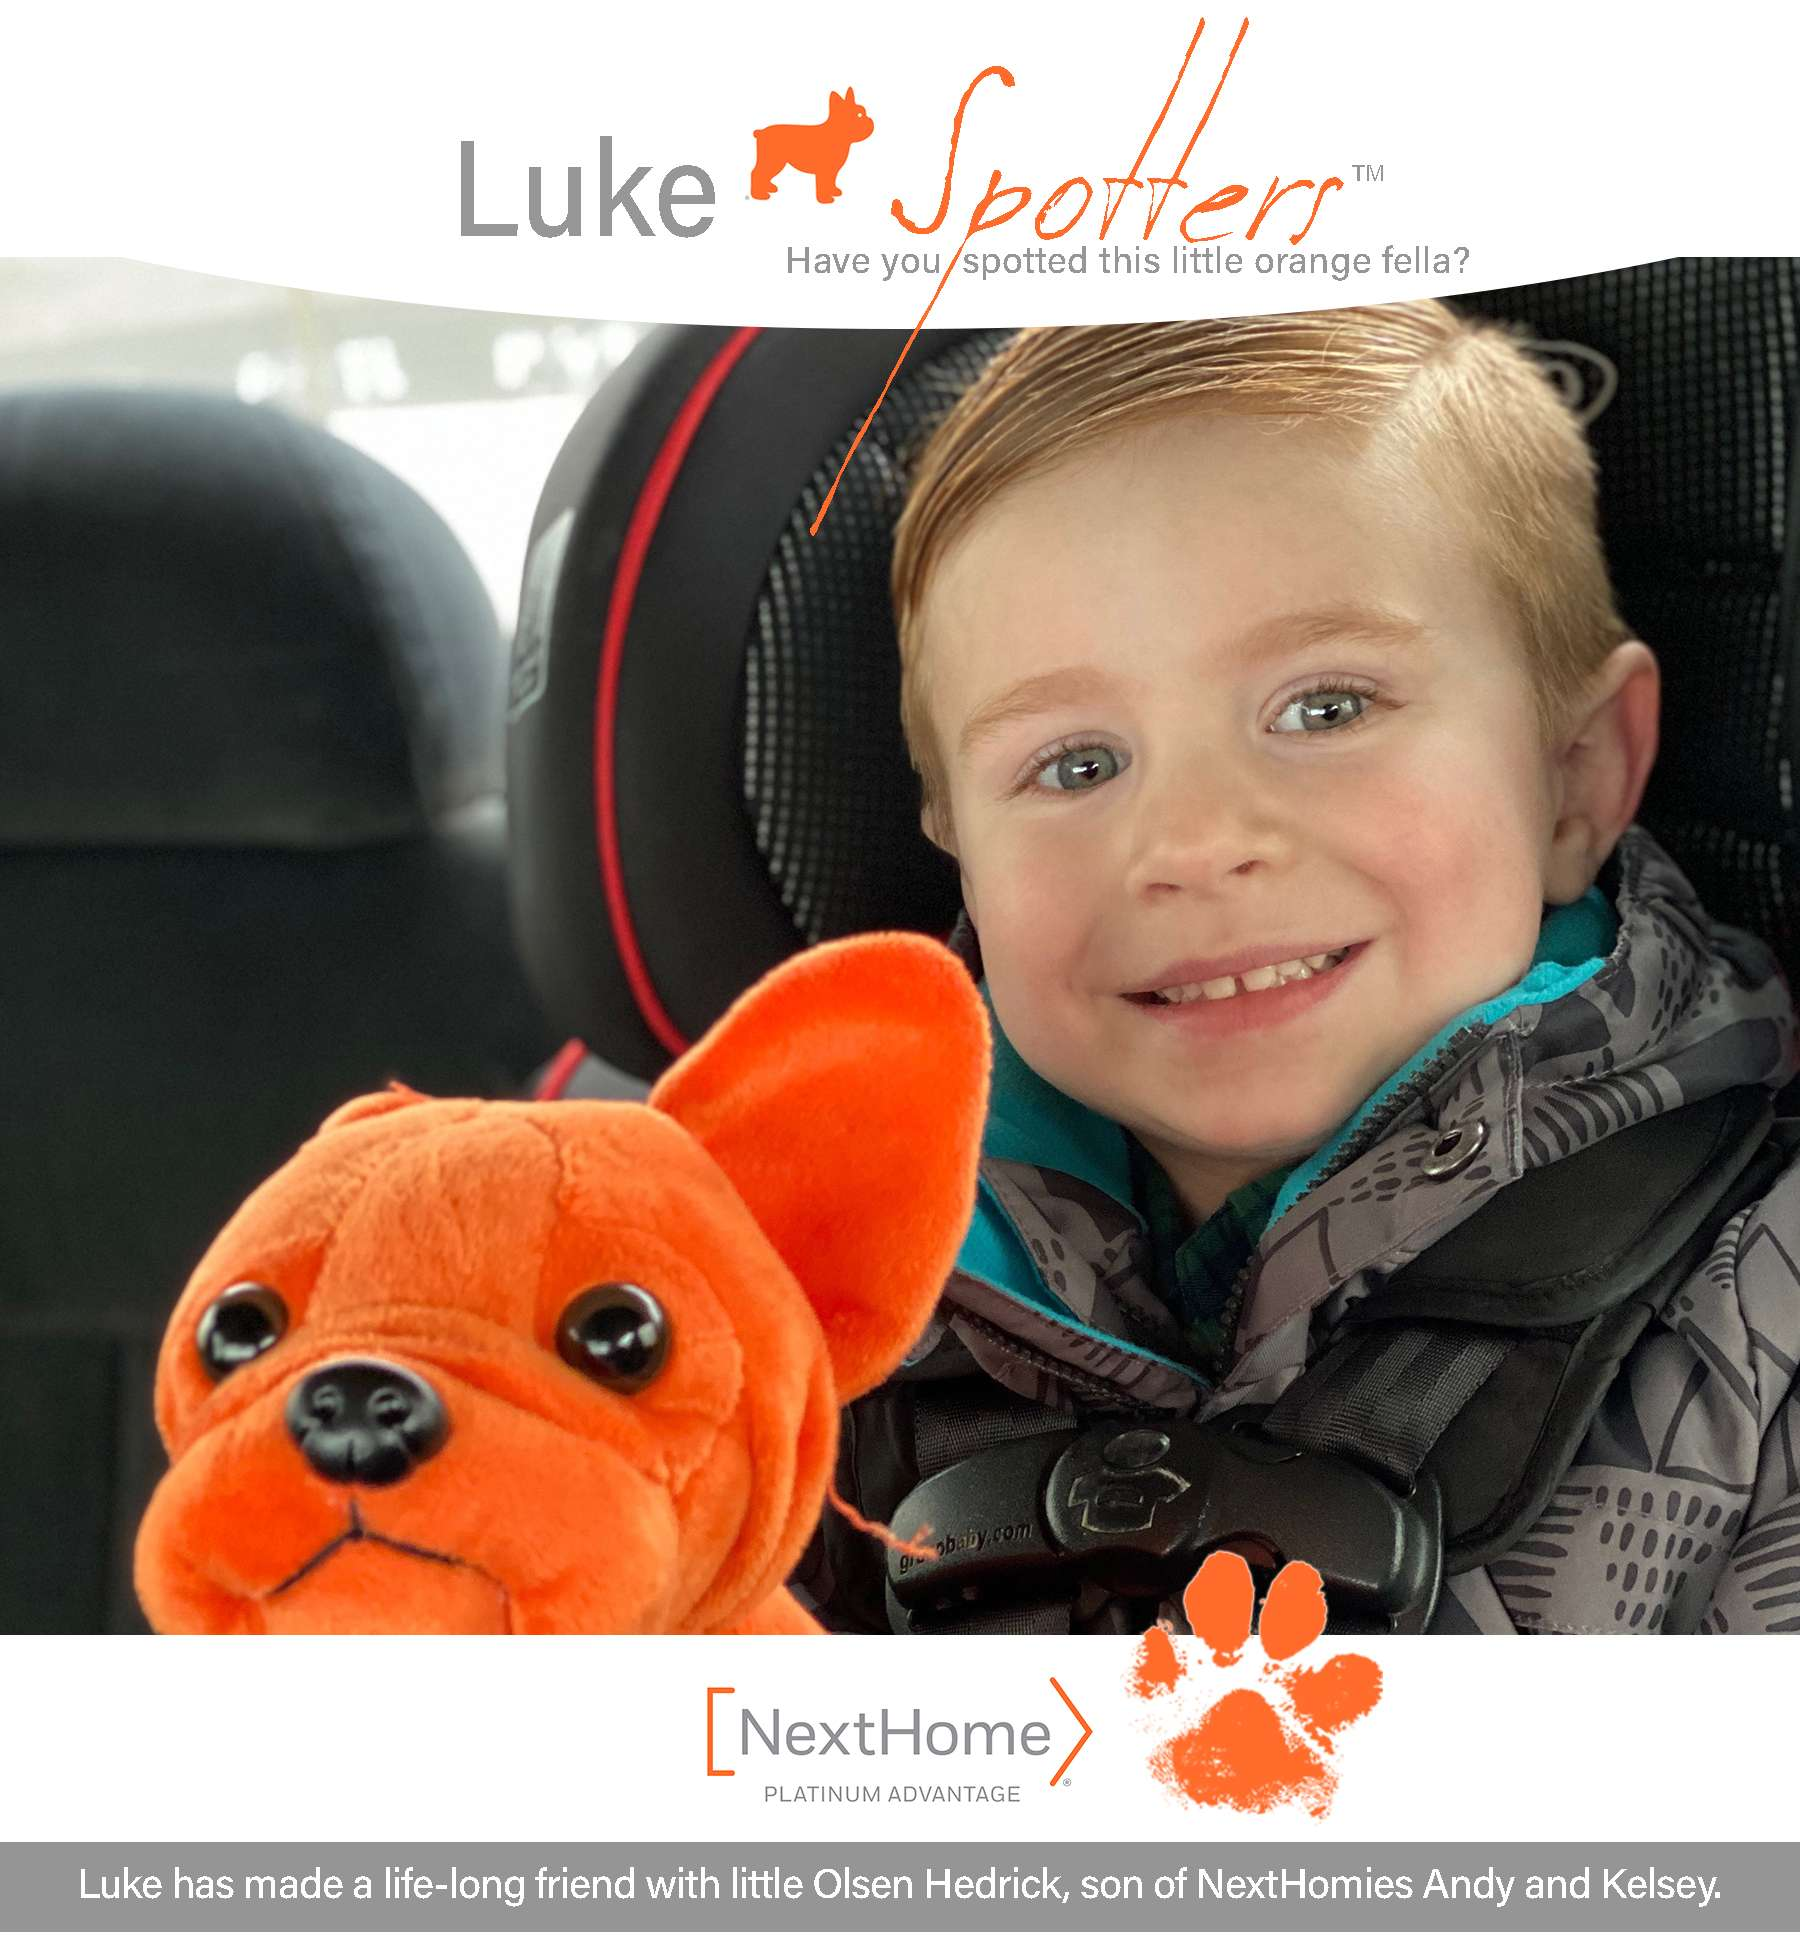 Luke has made a life-long friend with little Olsen Hedrick, son of NextHomies Andy and Kelsey.